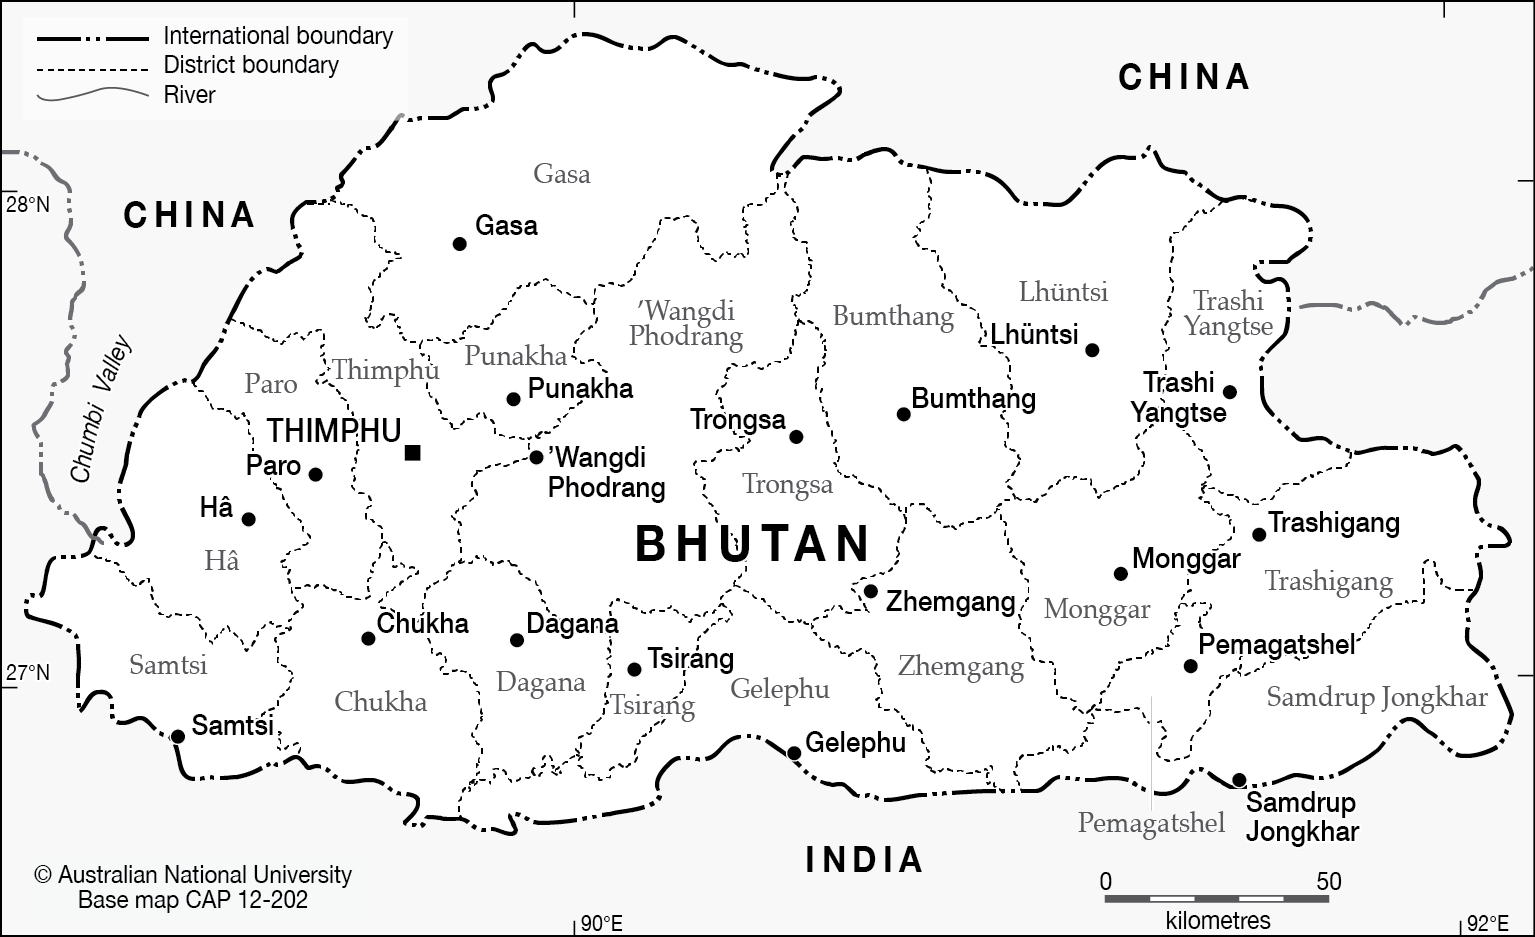 Bhutan base cartogis services maps online anu kb elevation map png 188 mb gumiabroncs Choice Image